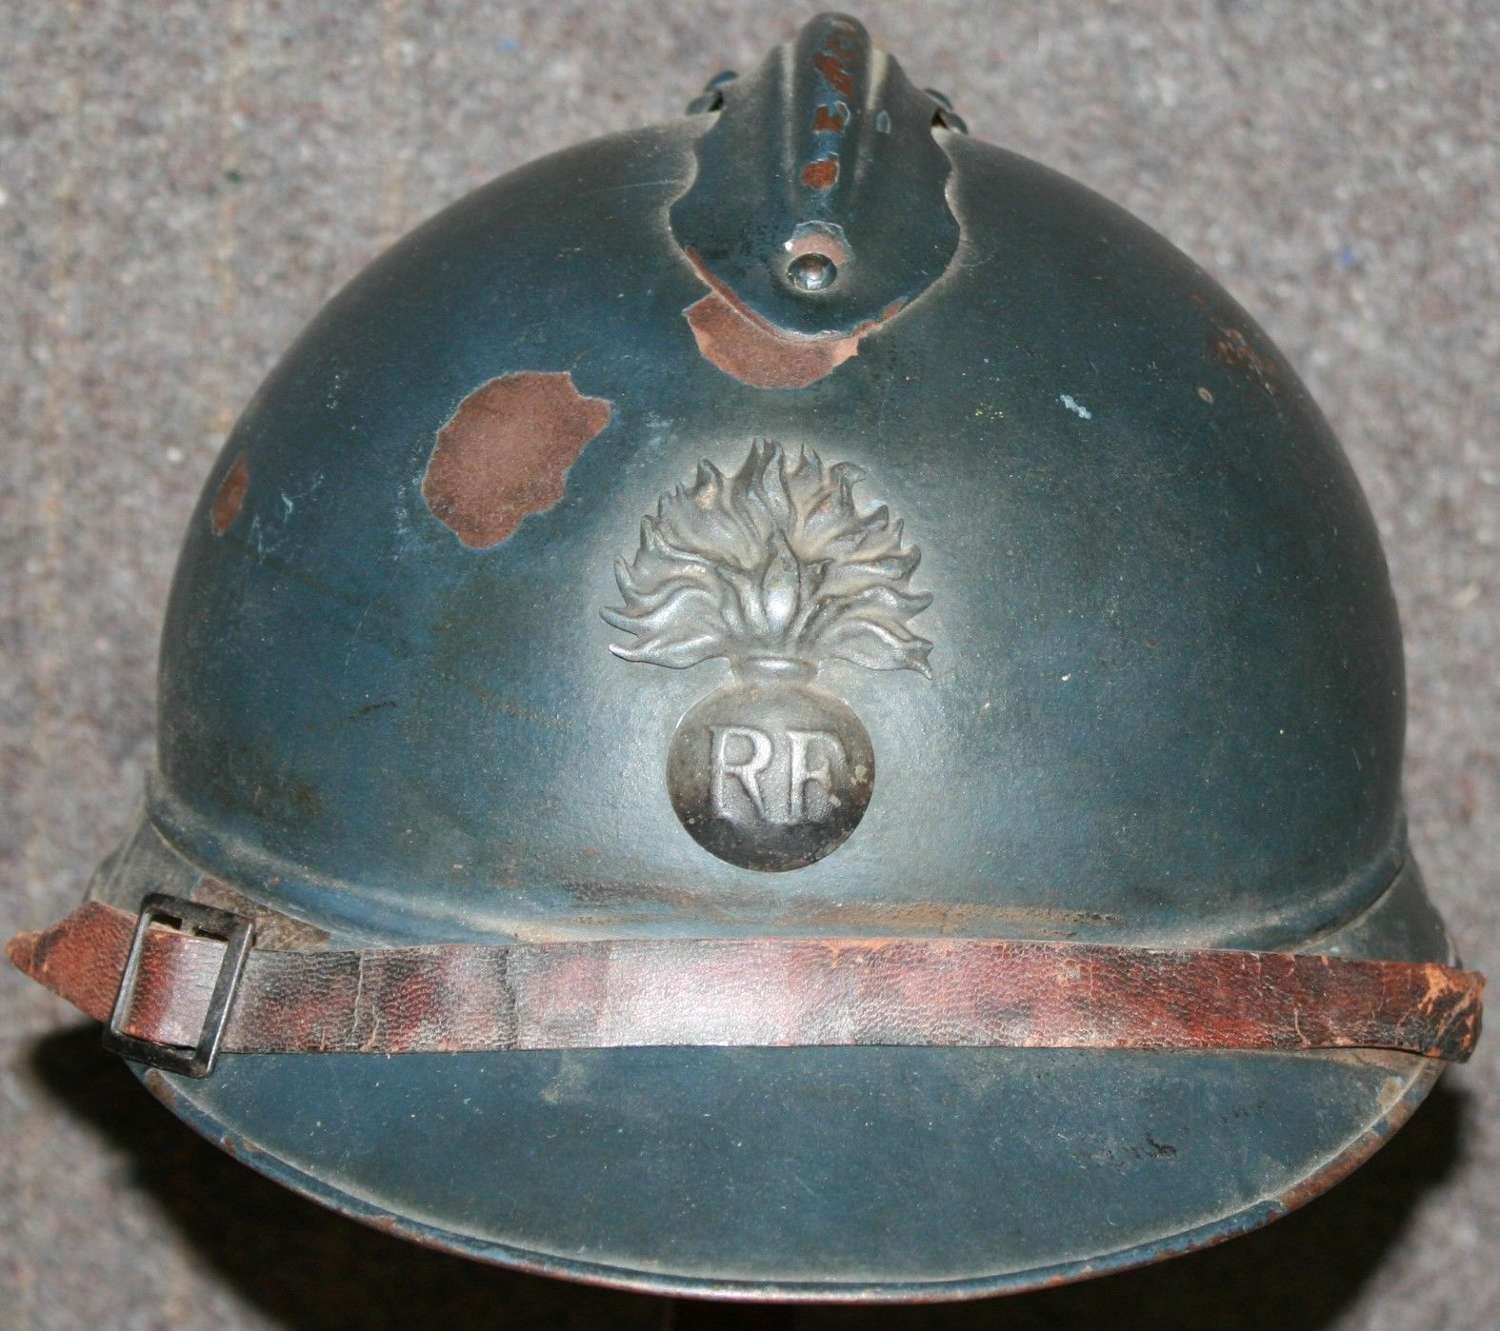 A WWI FRENCH ADRIAN HELMET